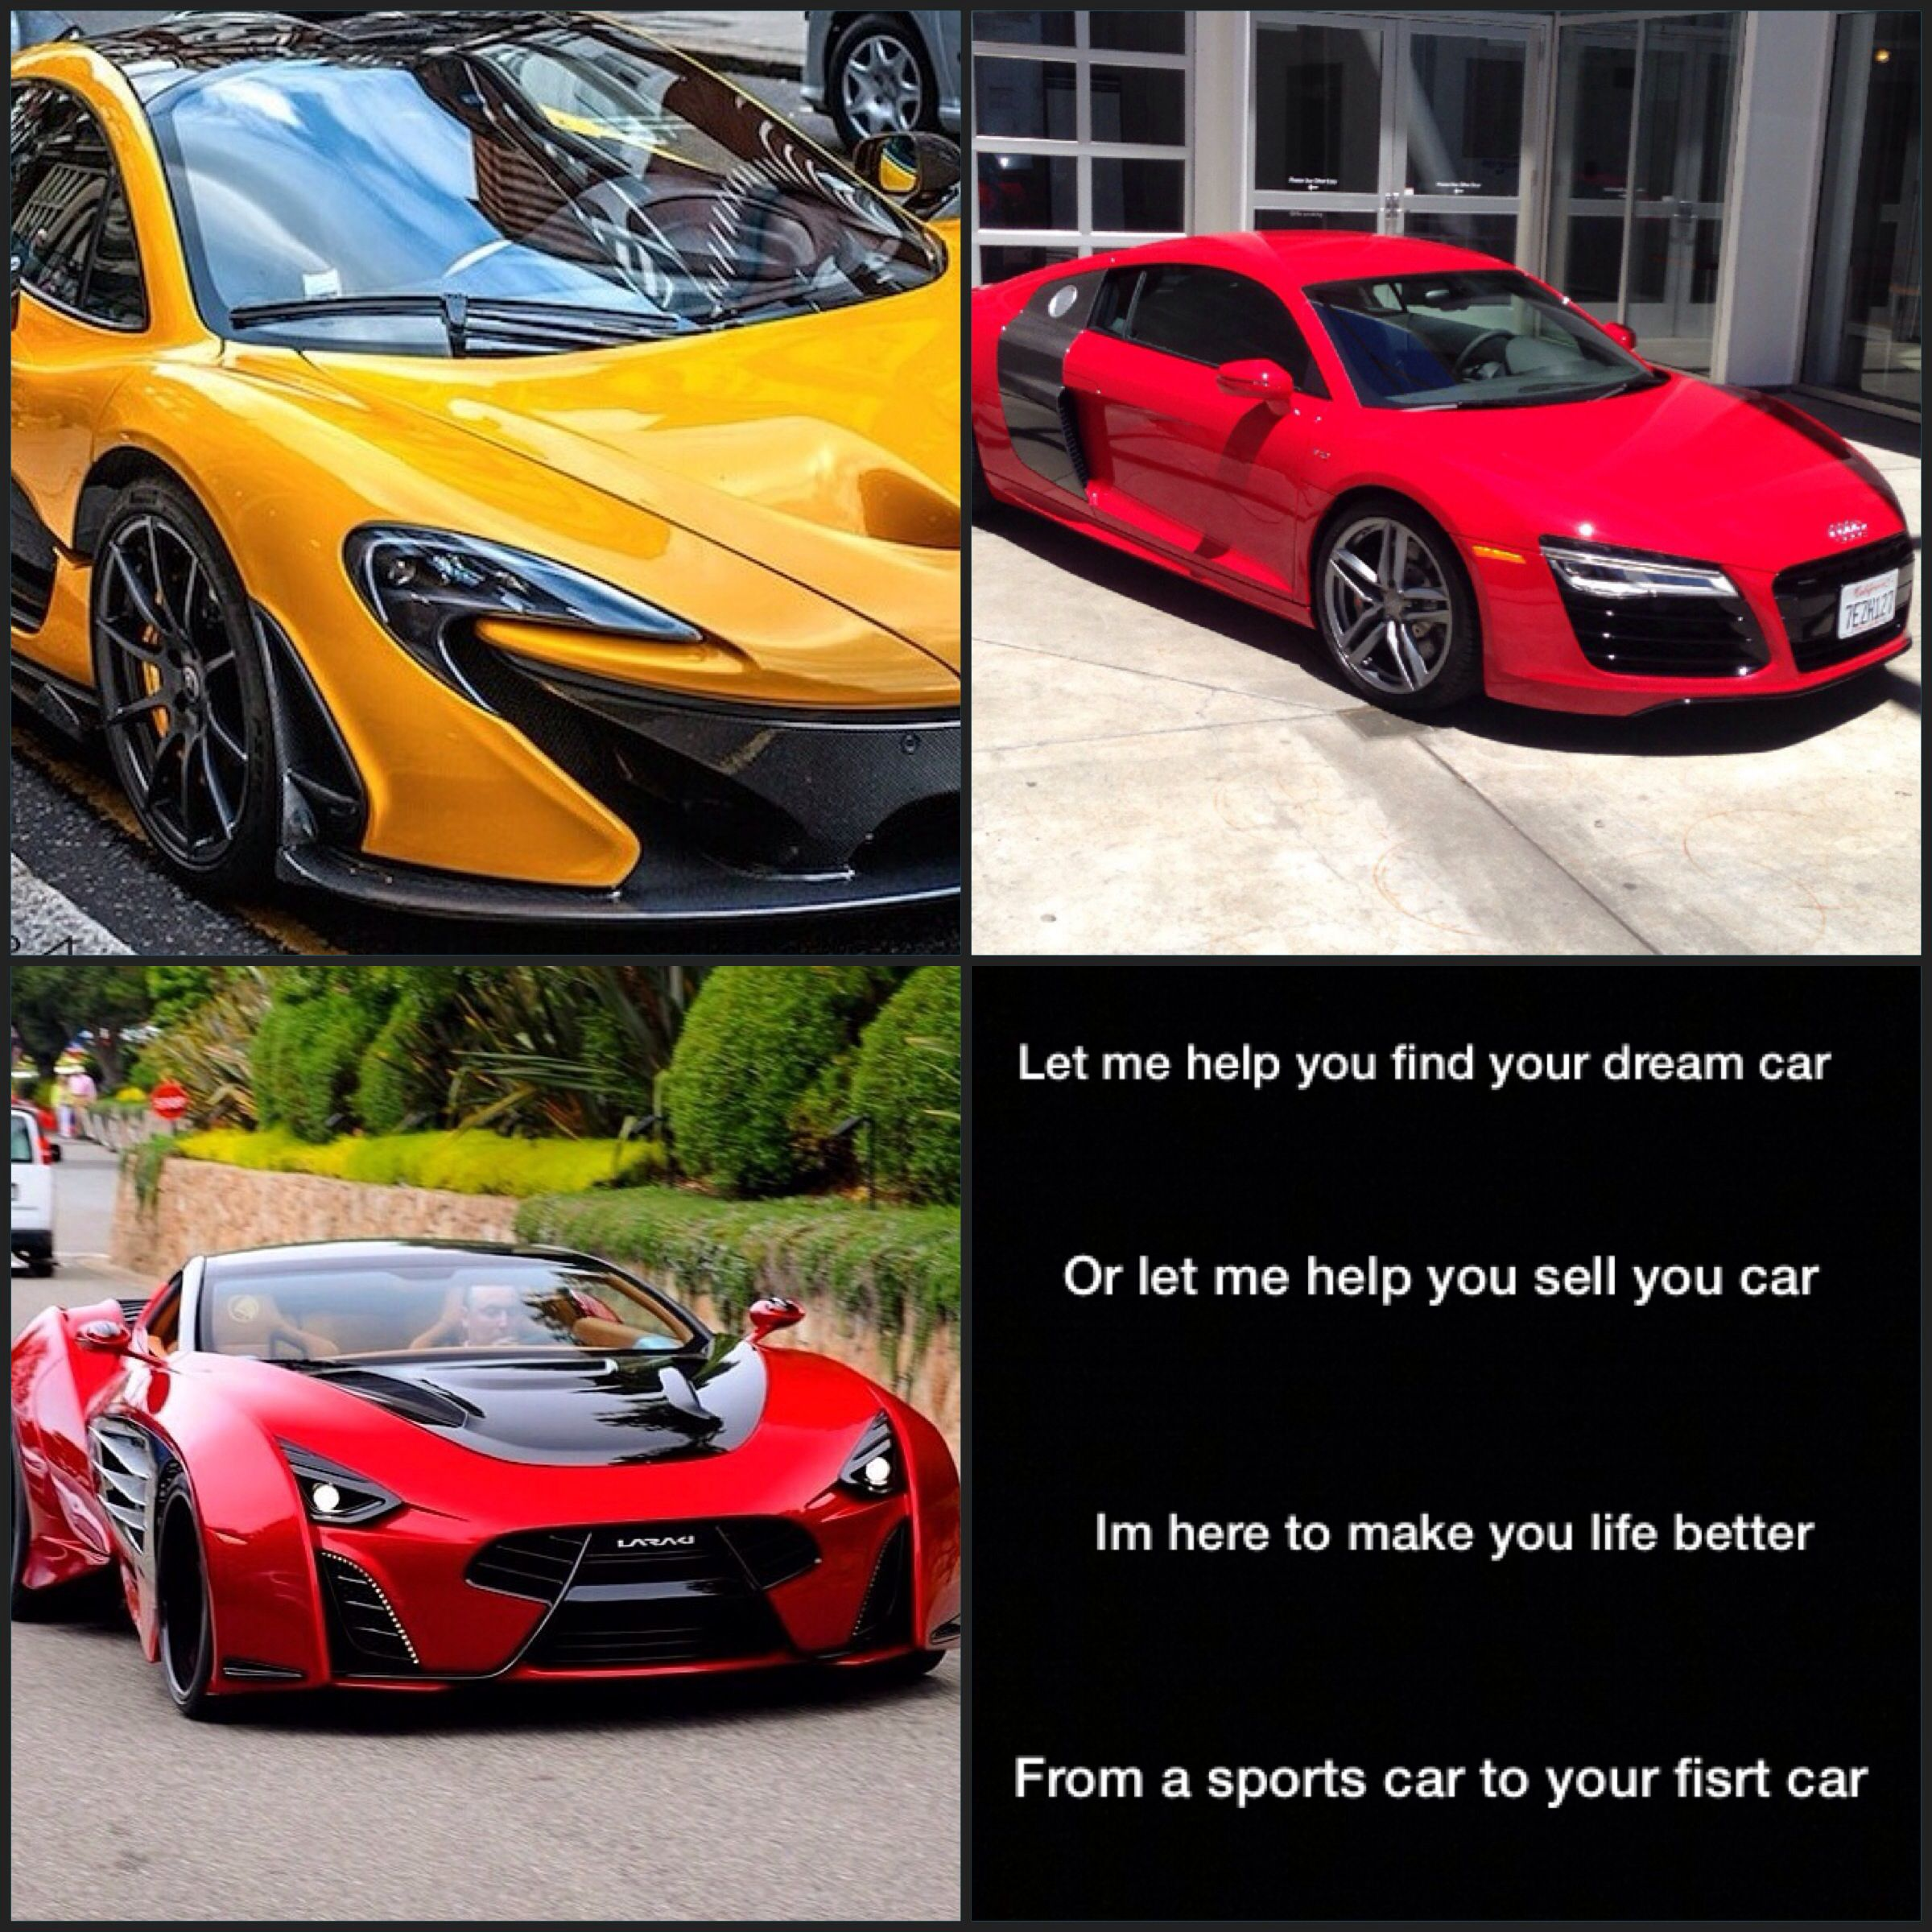 if you looking for a car to or sell let me help you find what